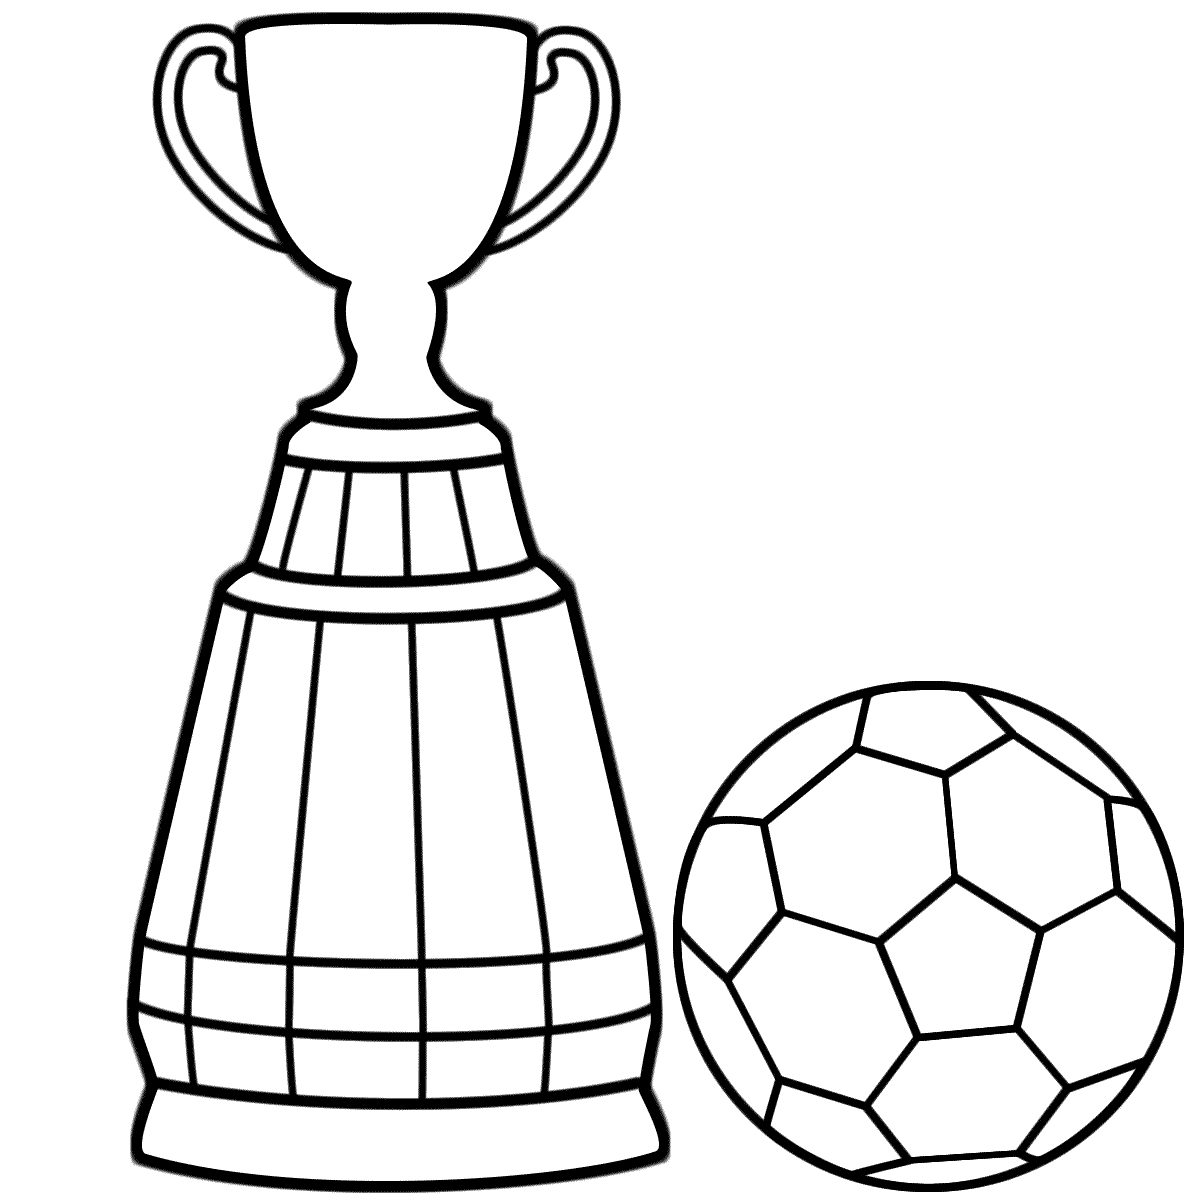 soccer coloring pages soccer ball coloring pages download and print for free coloring pages soccer